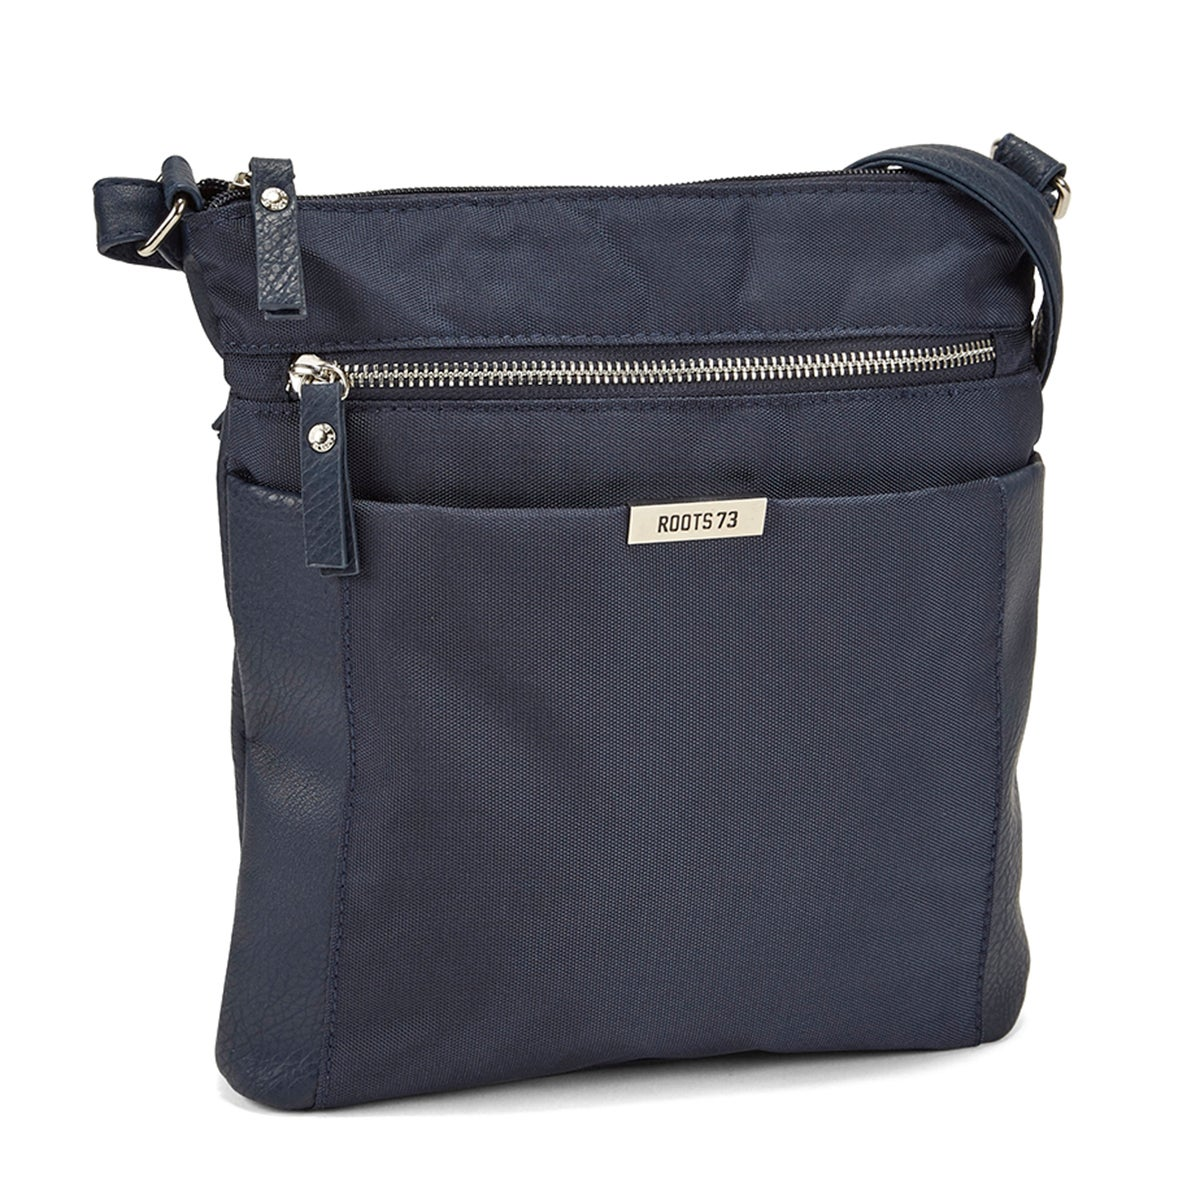 LdsRoots73 nvy north south crossbody bag